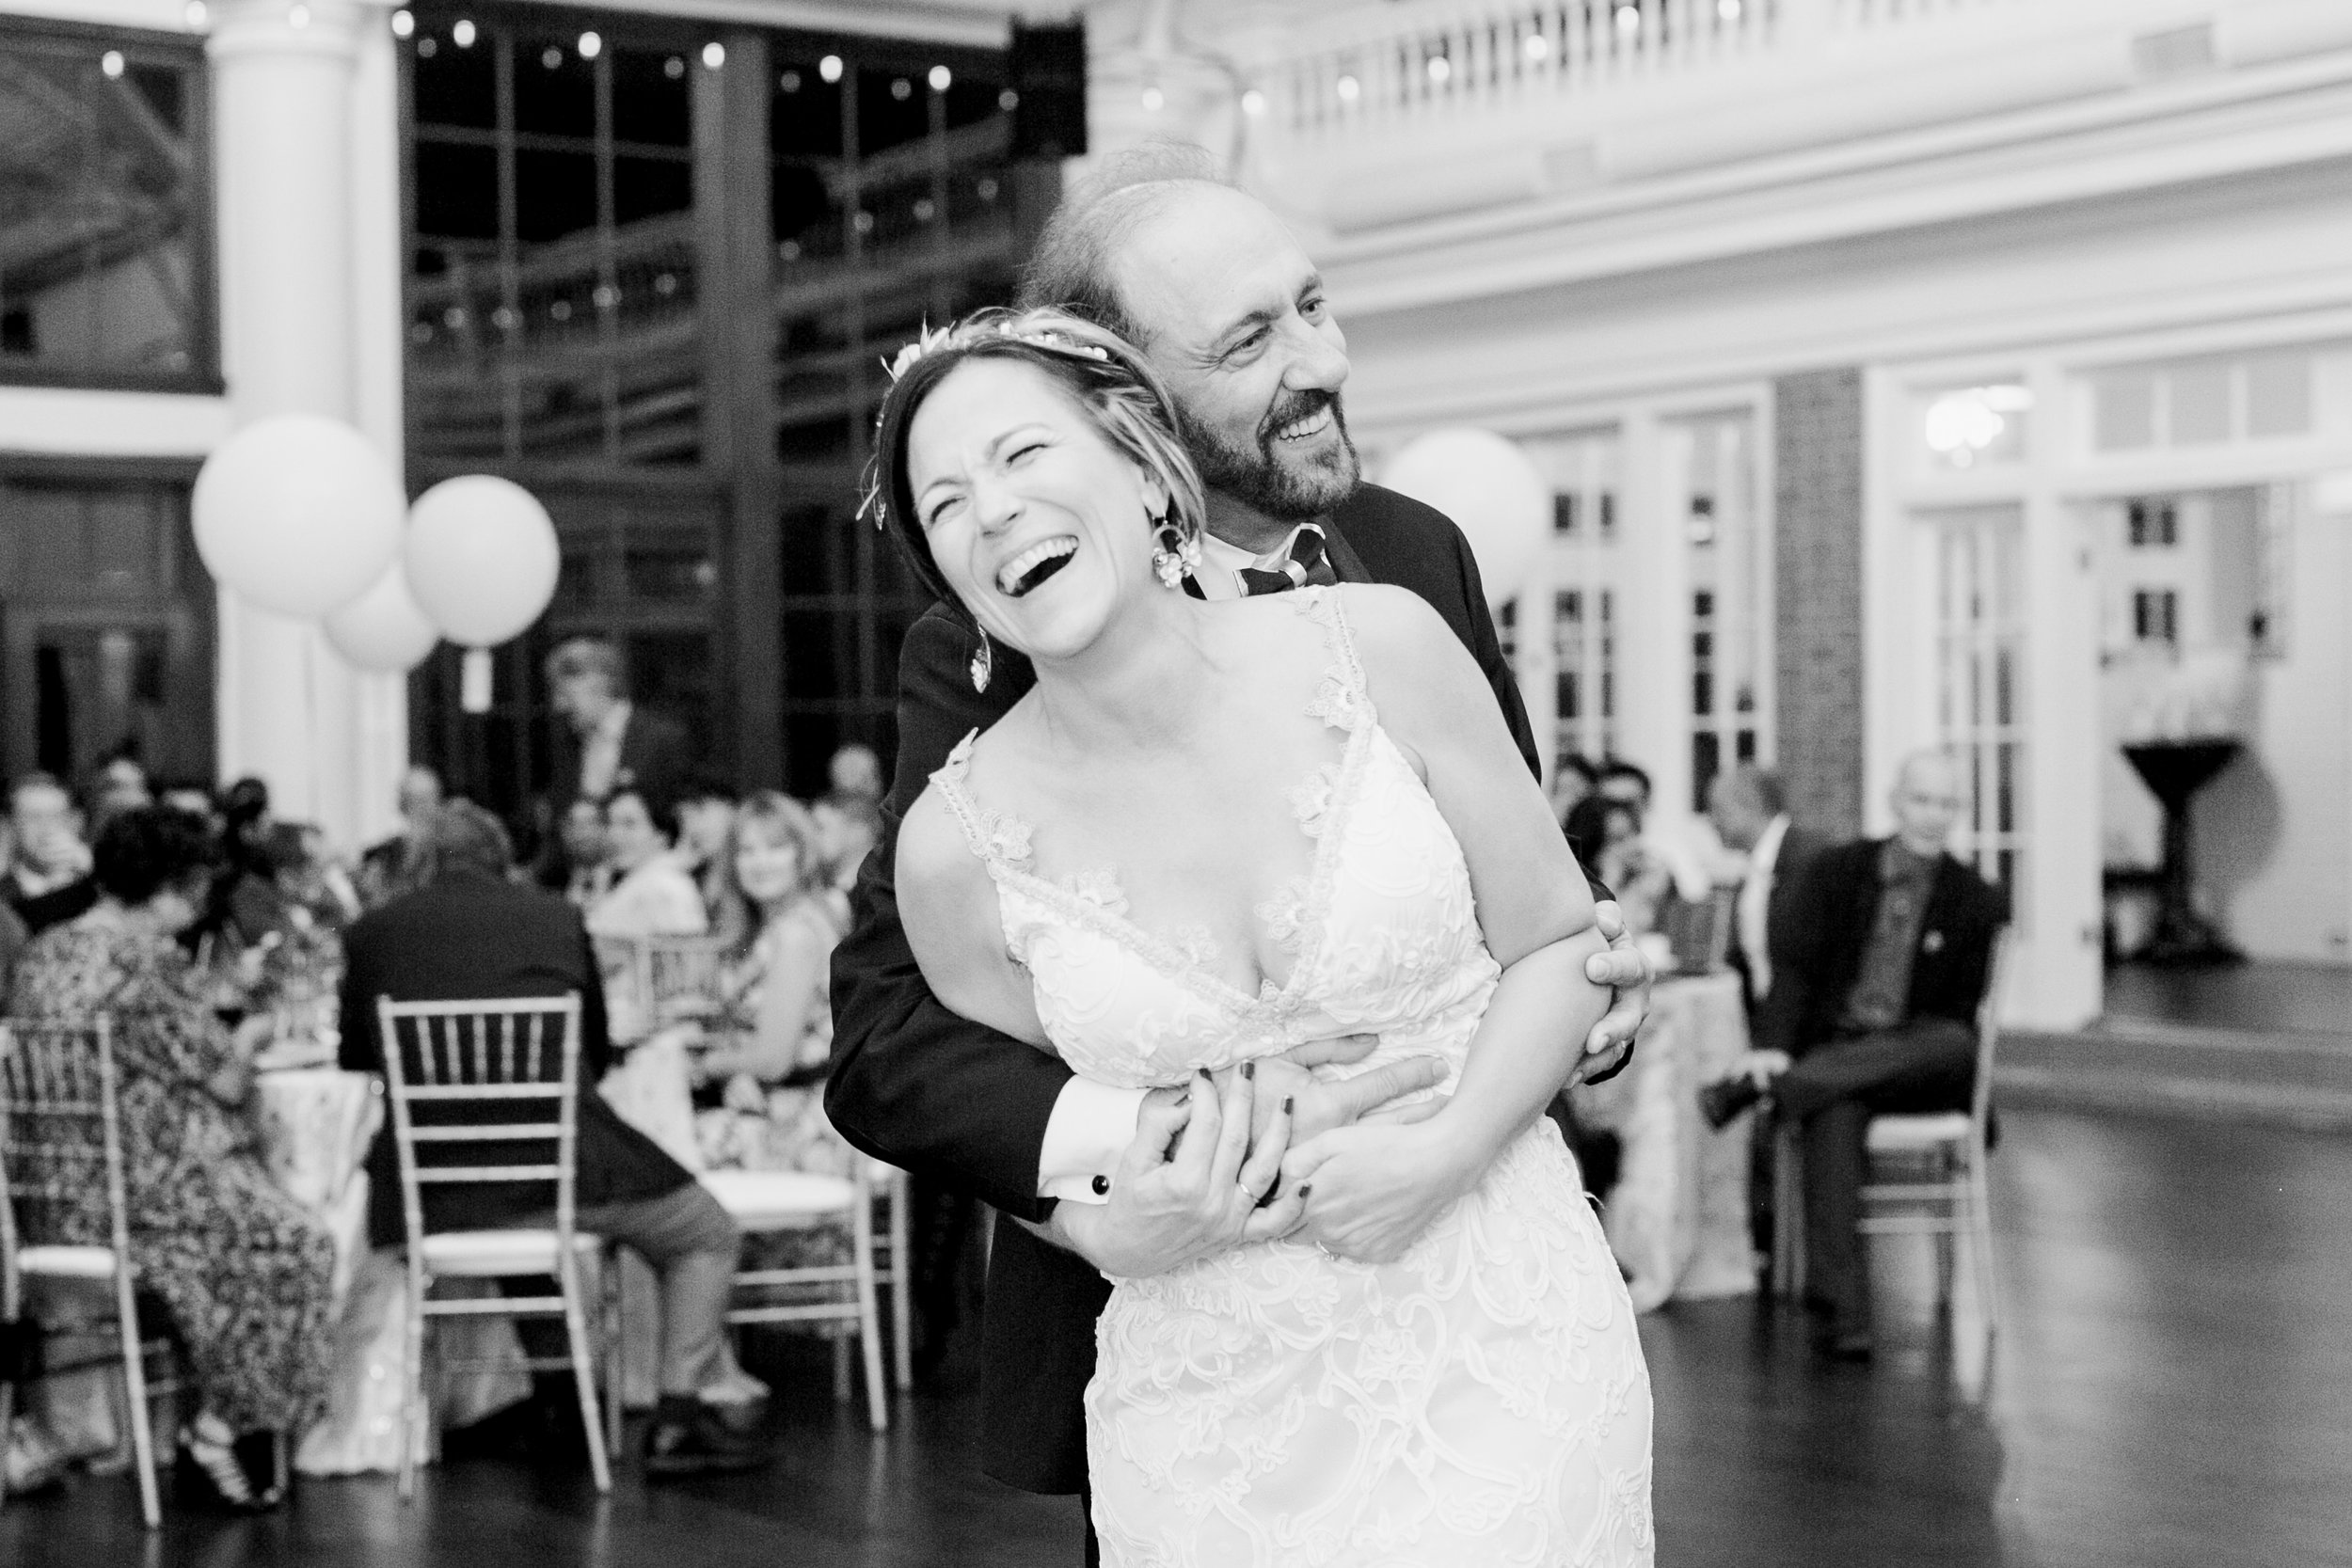 Klaire-Dixius-Photography-Fine-Art-Virginia-Wedding-Photographer-Raspberry-Plain-Manor-Wedding-Leesburg-VA-George-Linda-Intros-First-Dance-59.jpg